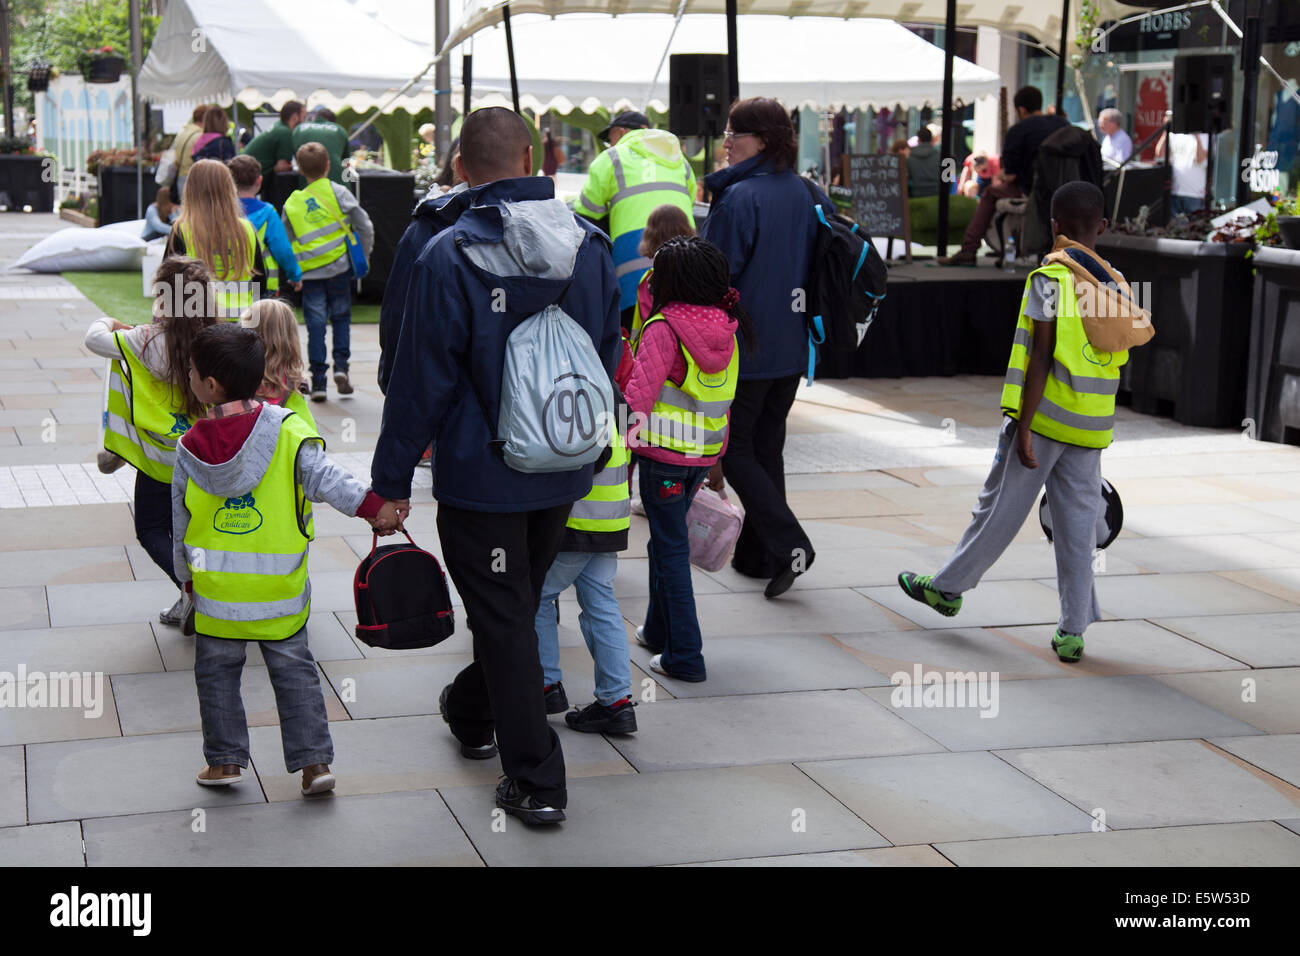 Manchester, UK 6th August 2014. Childcare at Dig the City Deansgate, an annual urban gardening festival delivered - Stock Image